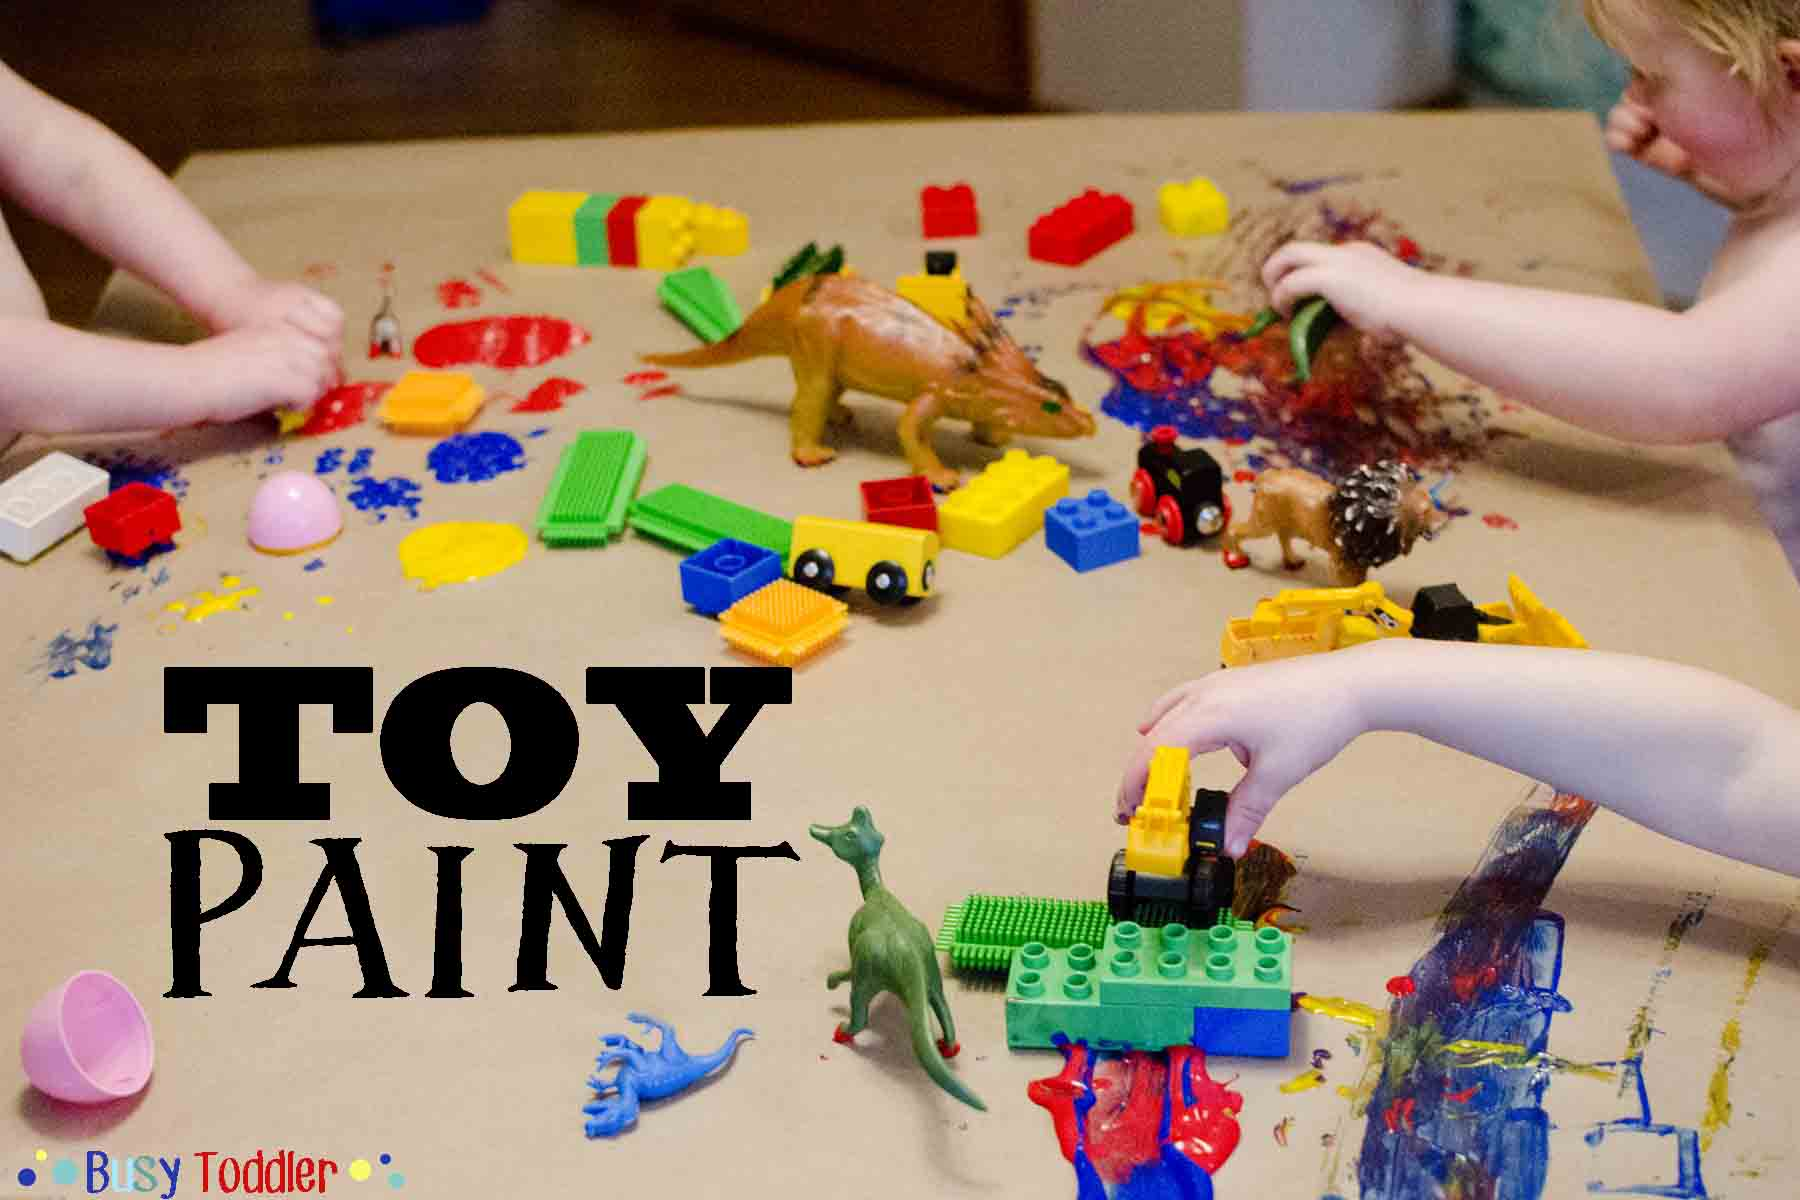 Toy paint messy art activity busy toddler Fun painting ideas for toddlers